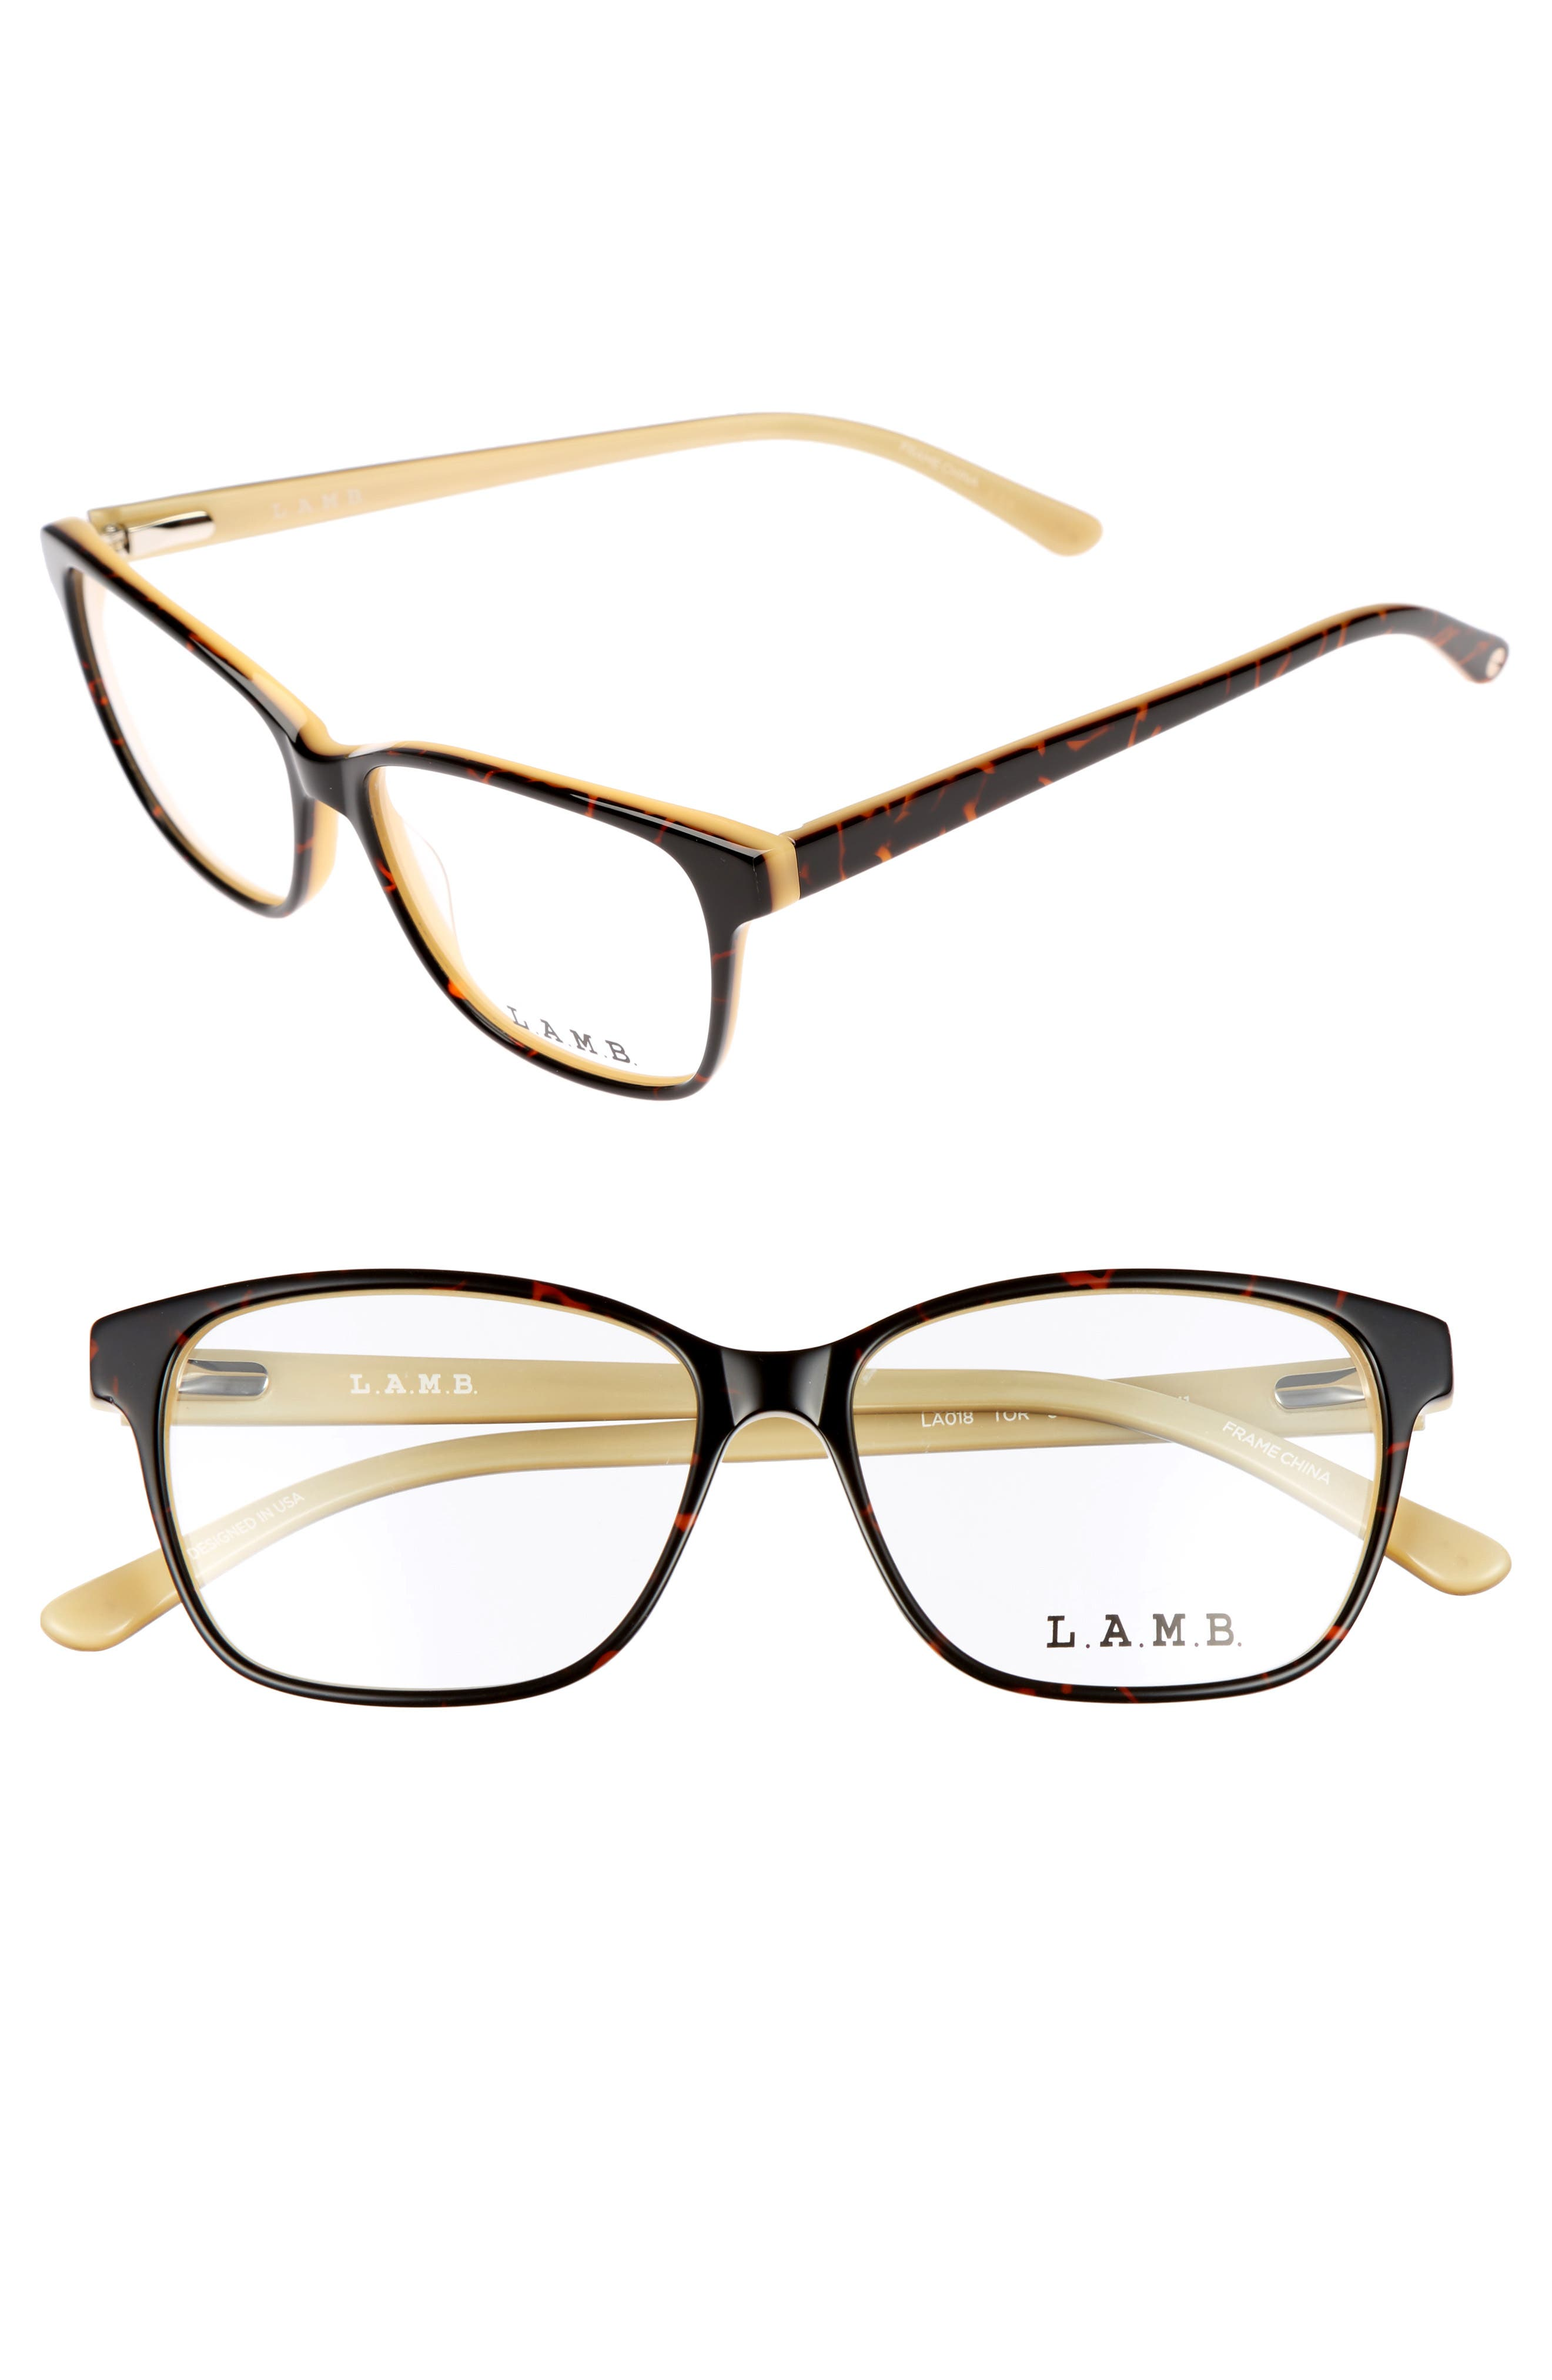 54mm Square Optical Glasses,                         Main,                         color, Yellow